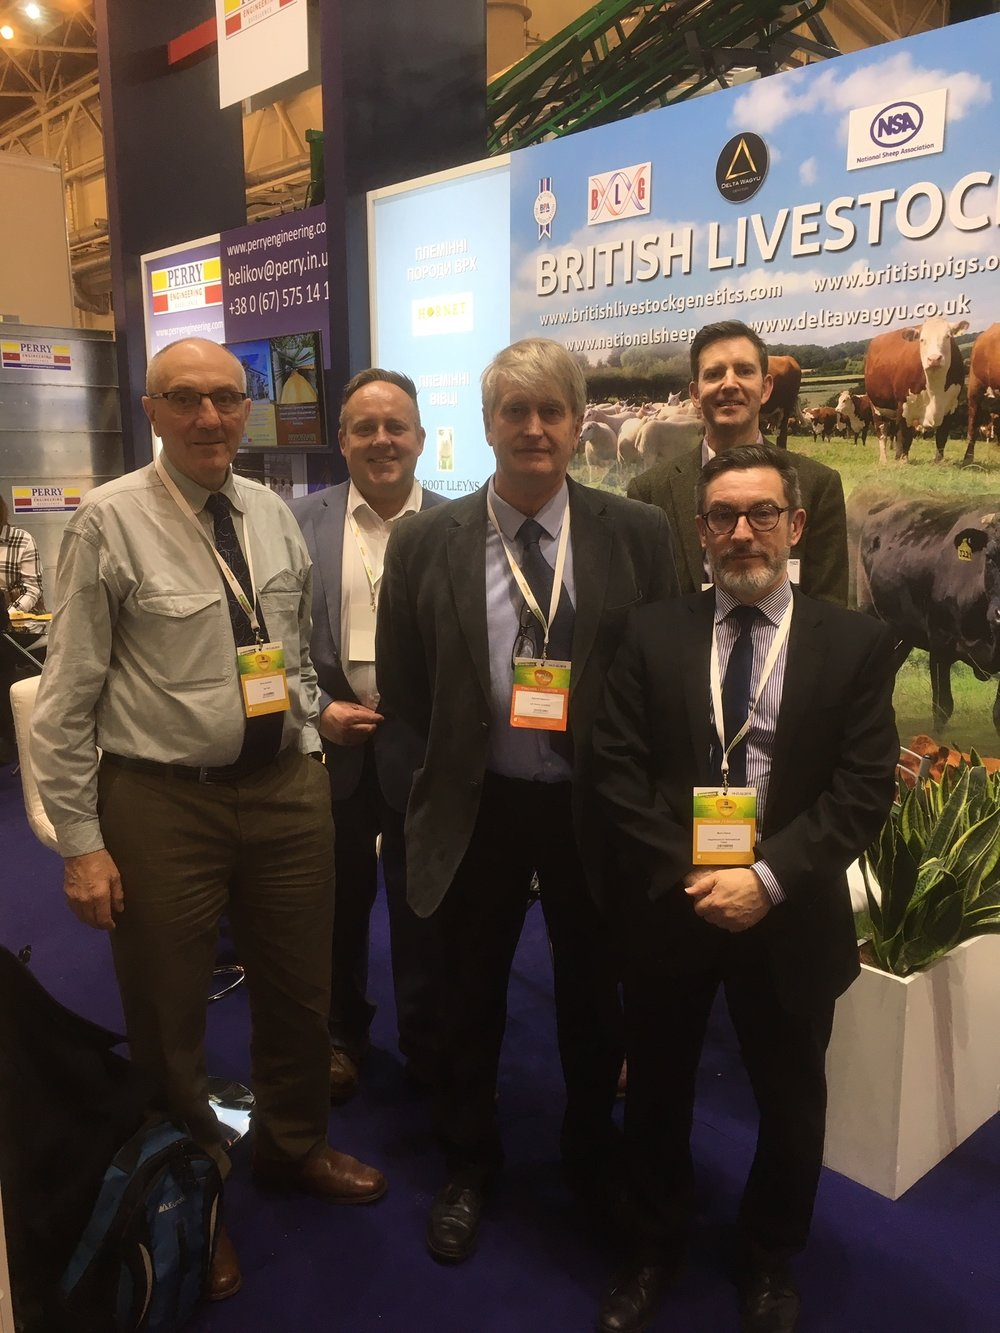 L-R Chris Jackson (UKTAG),  Matt Holmes (Perendale), Edward Adamson (NSA), Richard Saunders (BLG) and Mark Oakes (DIT Head of Bioeconomy)